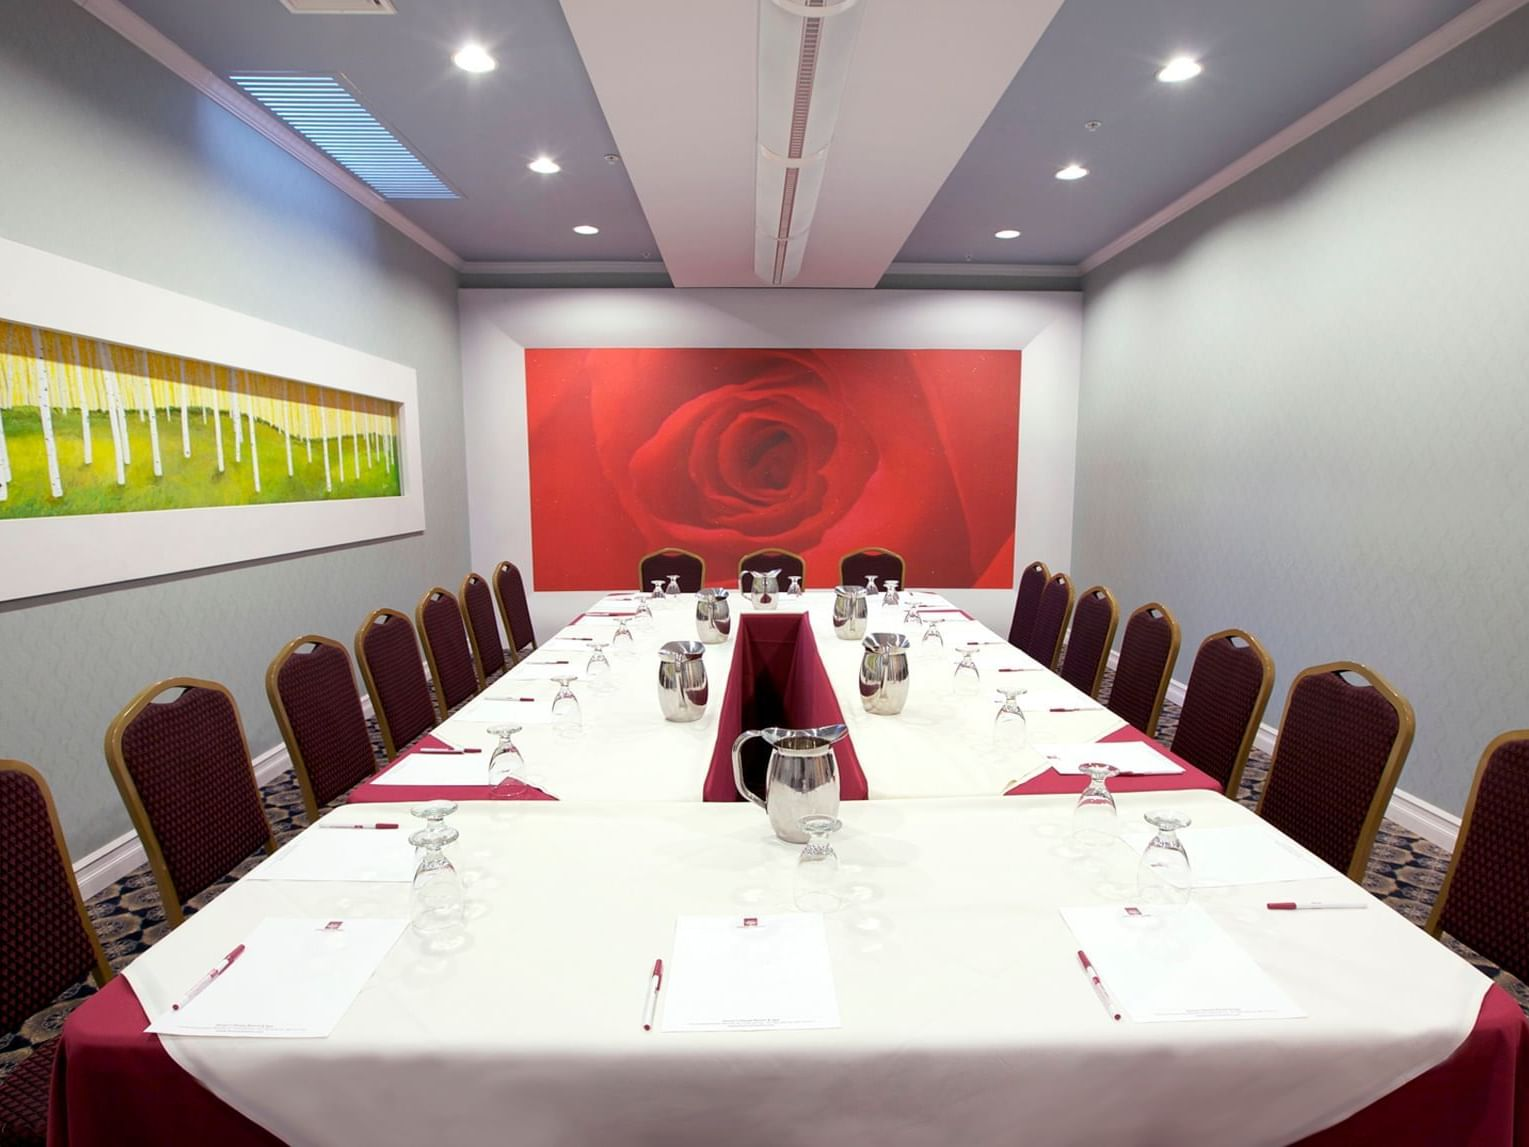 Conference table in meeting space